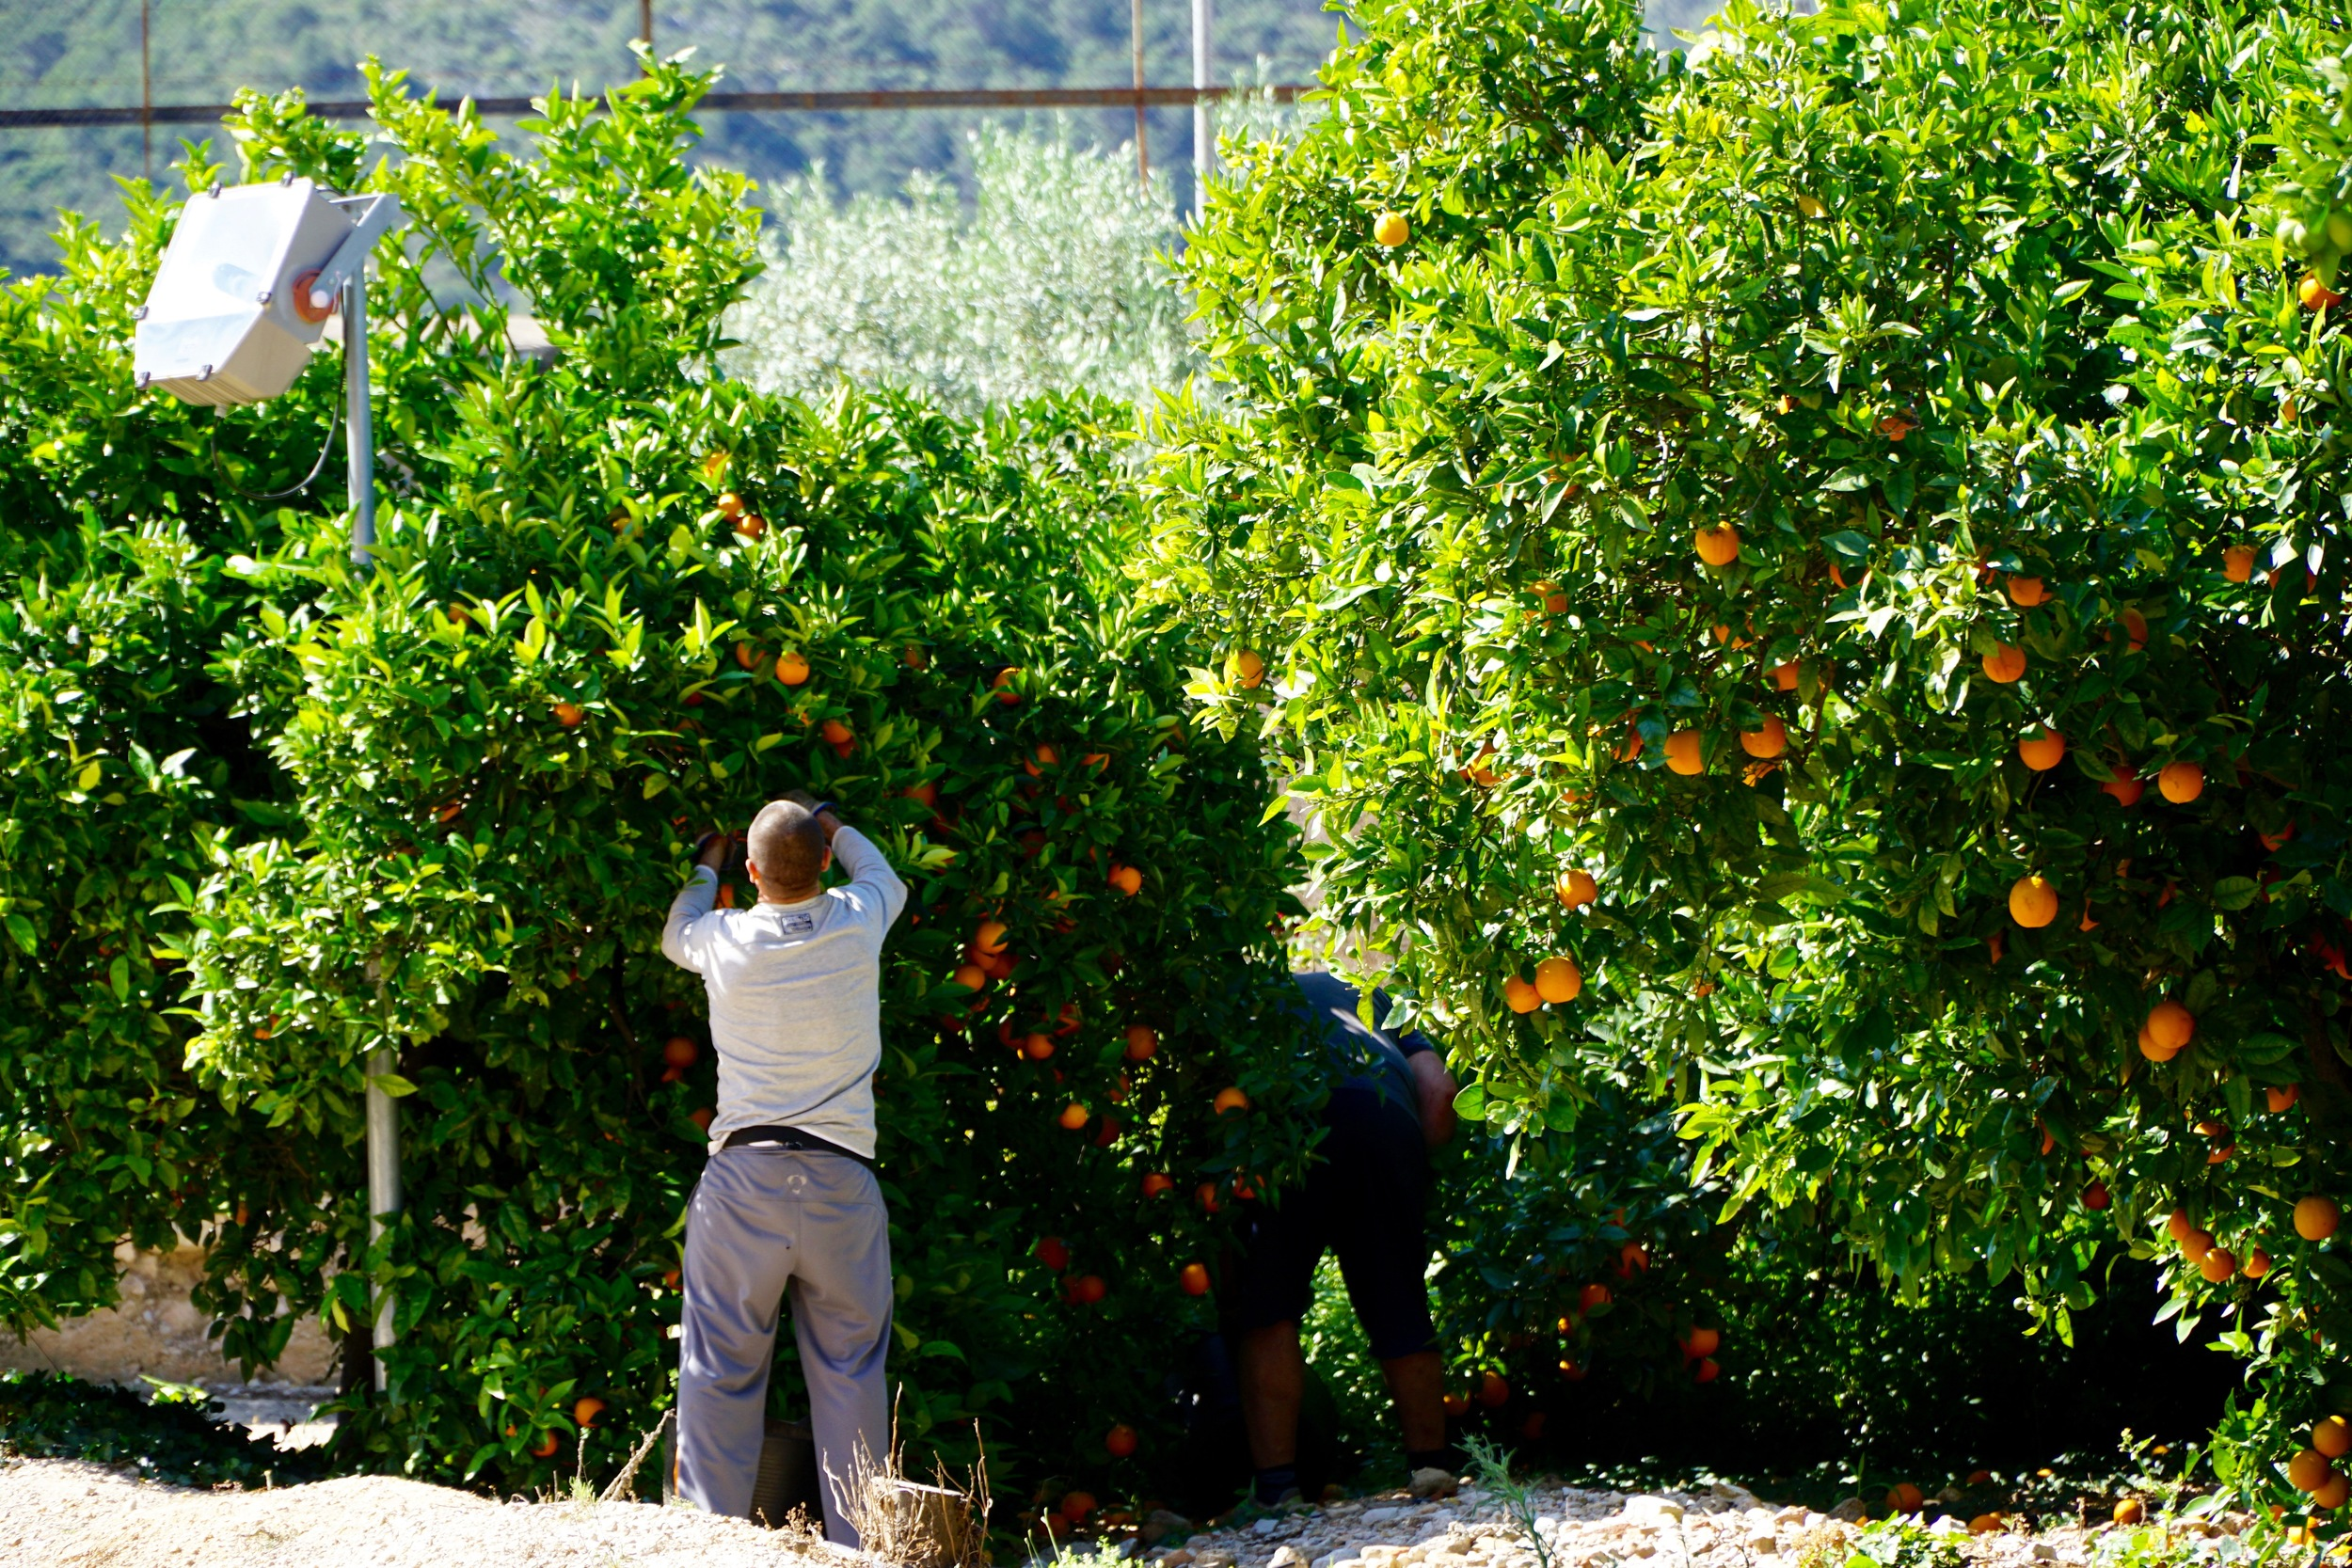 More orange trees than you thought possible.